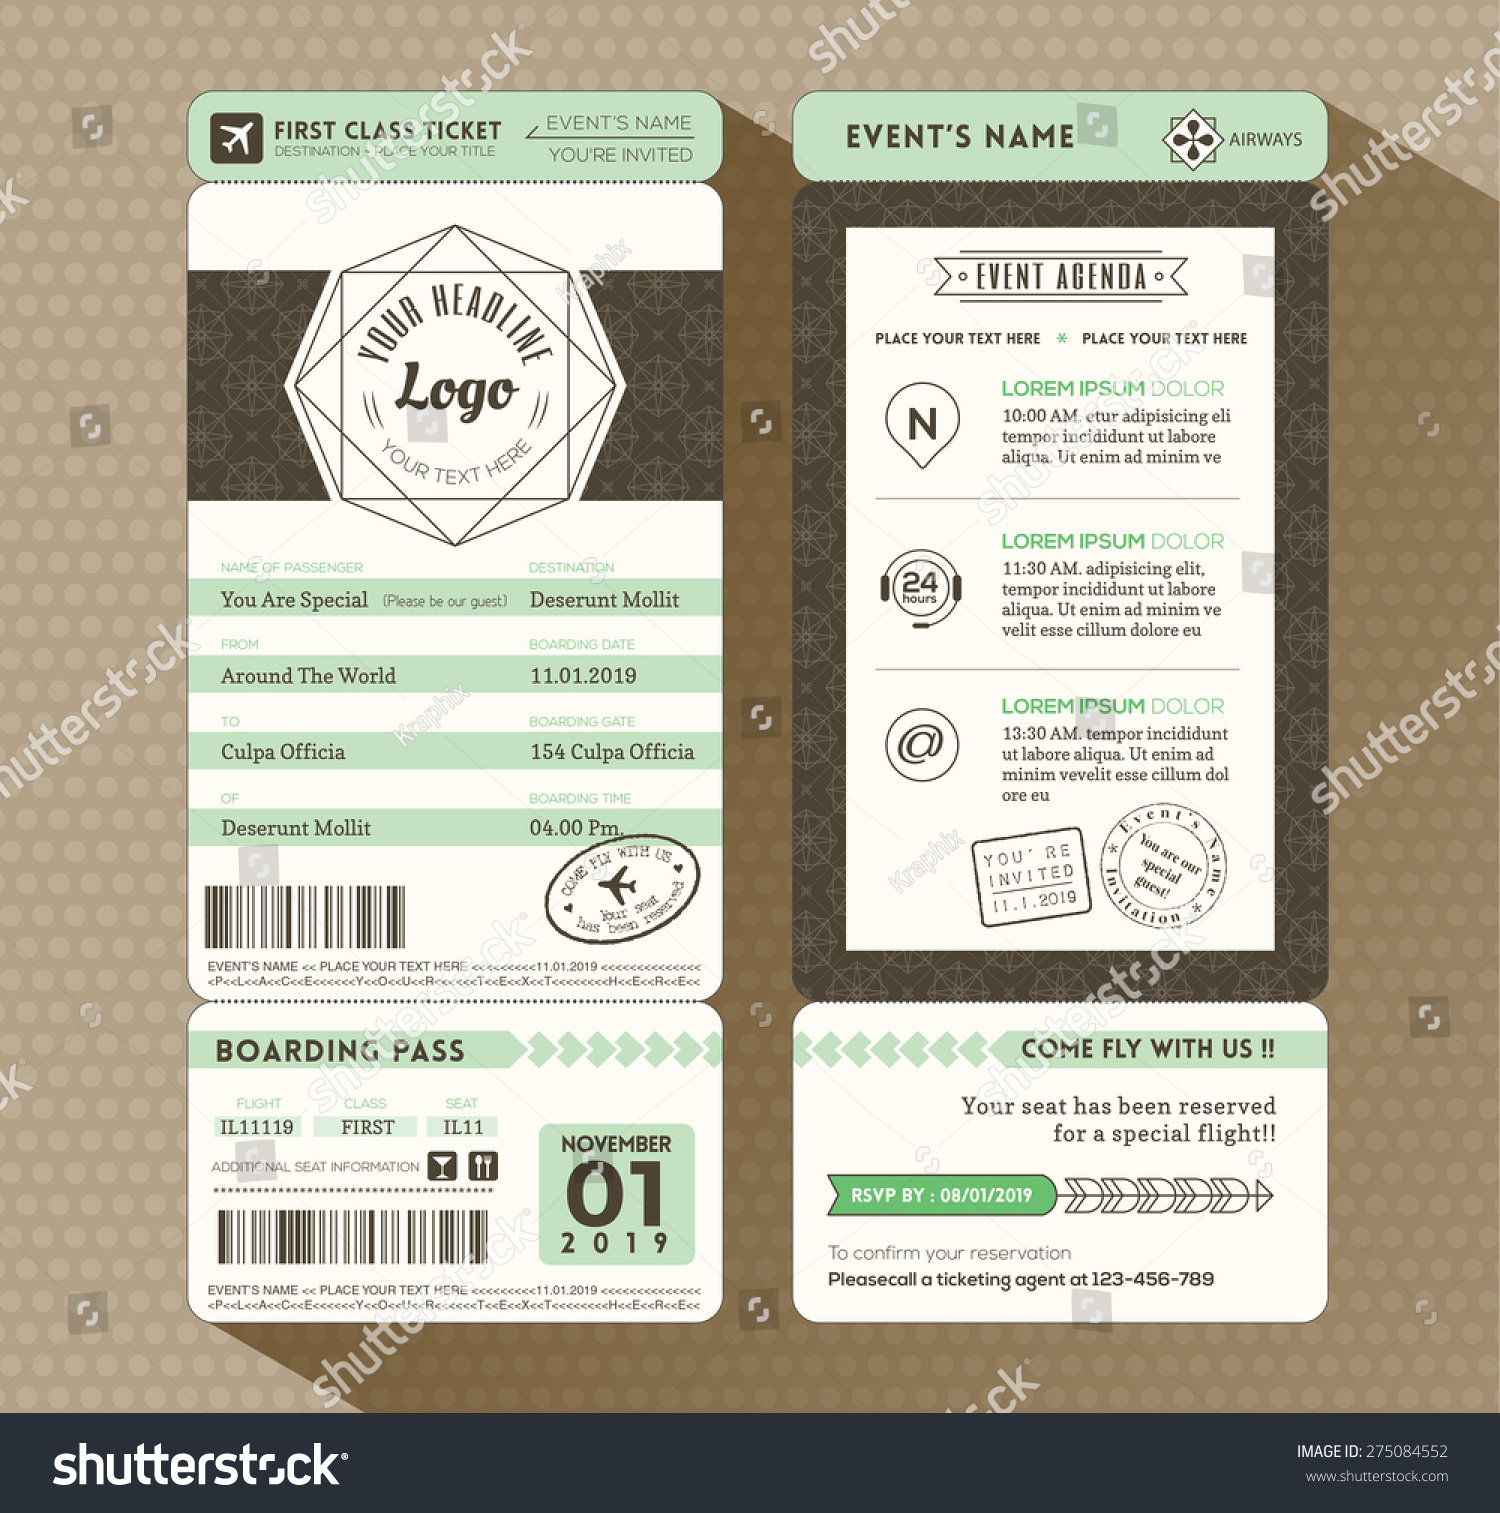 Famous 10 Best Resume Designs Big 10 Best Resume Writers Solid 15 Year Old Resume Example 16th Birthday Invitation Templates Old 18 Year Old Resumes Orange2 Page Resume Design Hipster Design Boarding Pass Ticket Event Stock Vector 275084552 ..